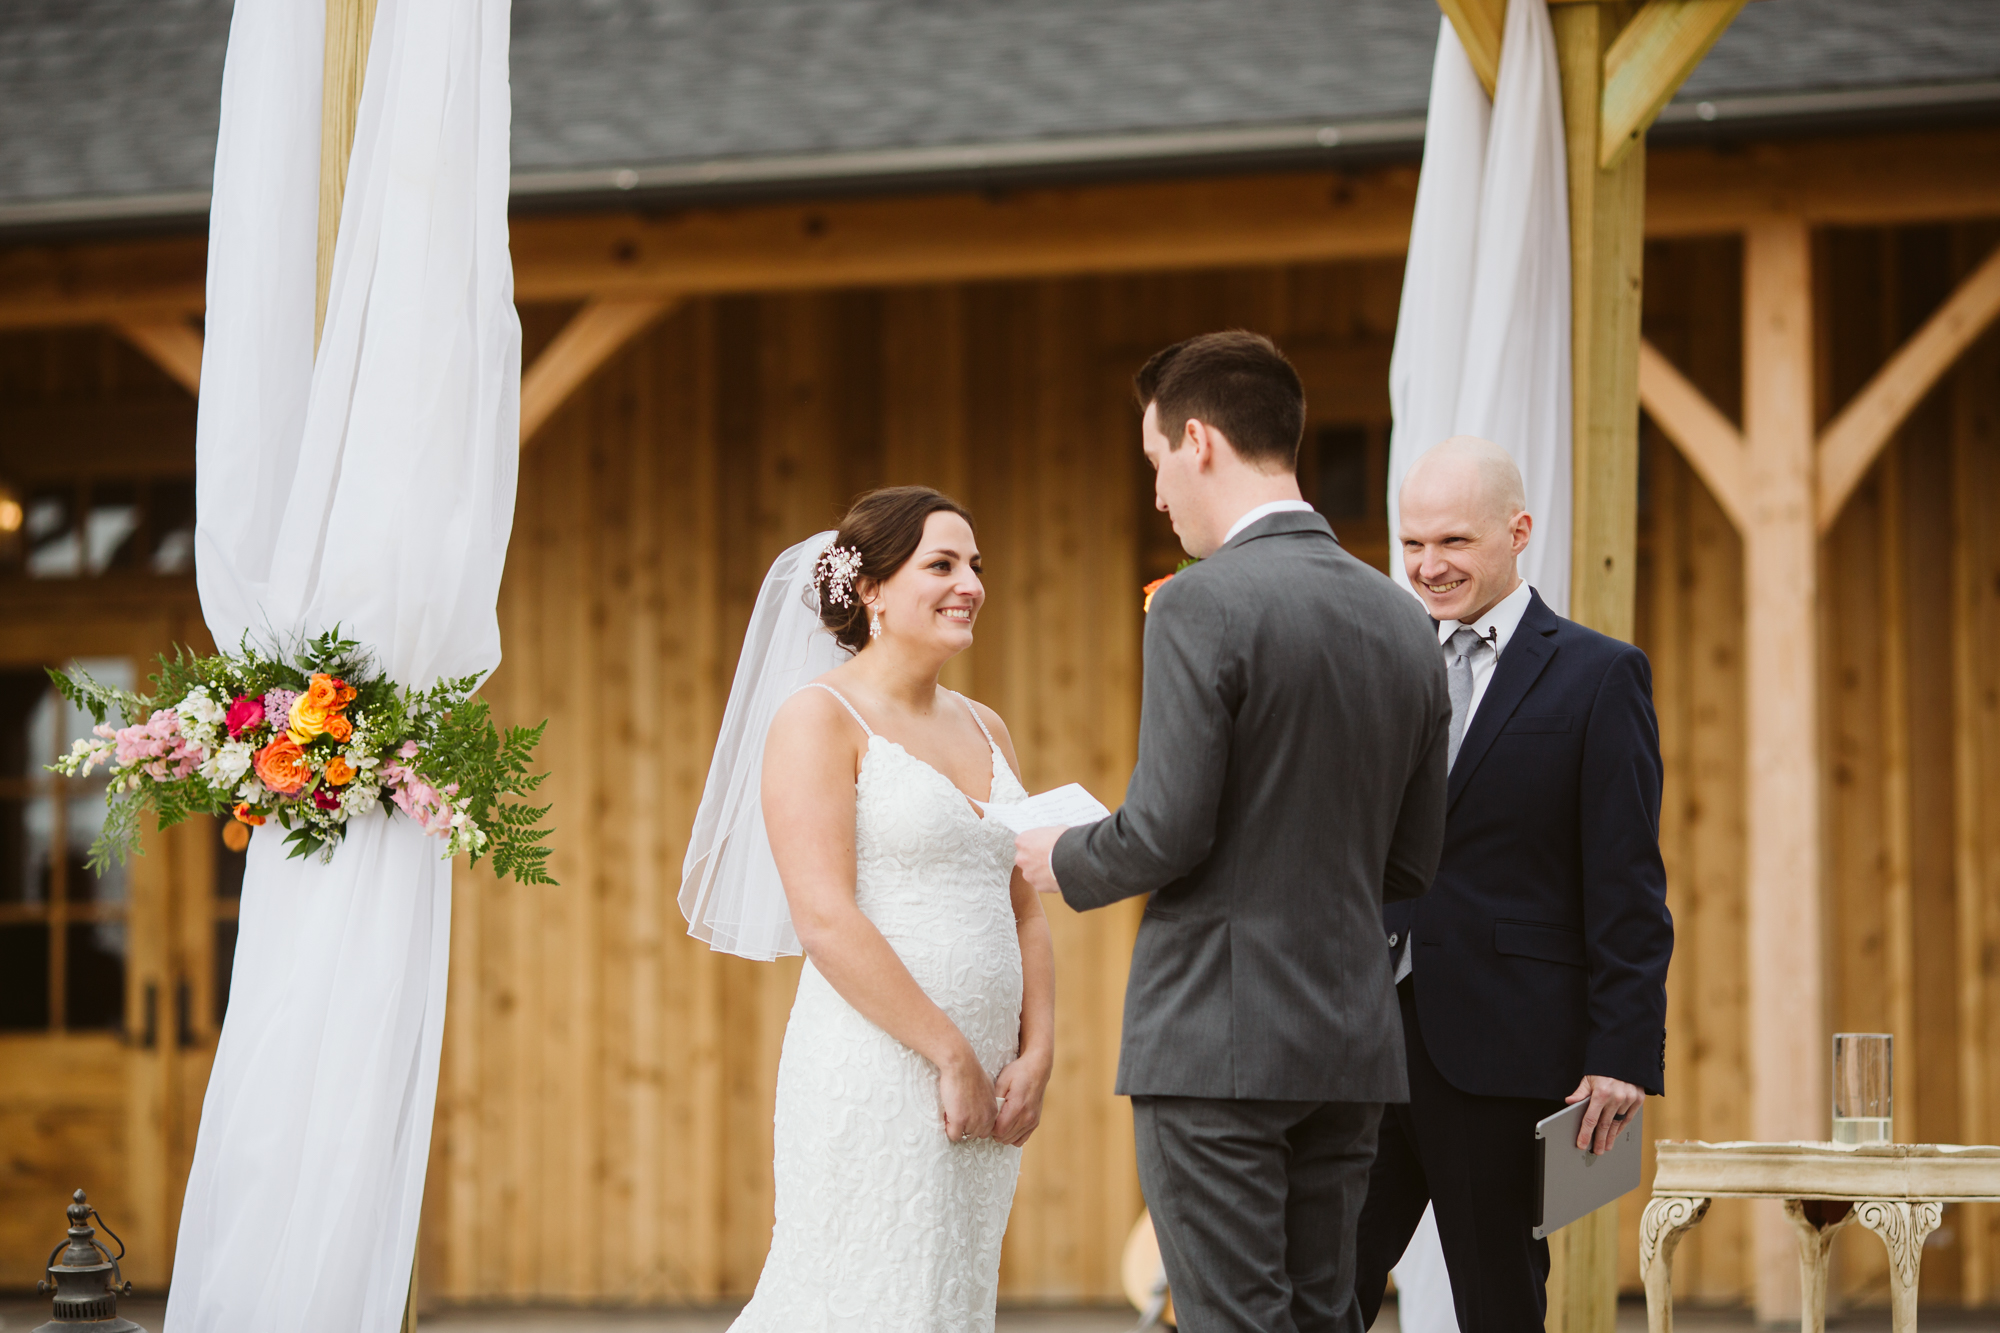 Groom saying his vows at stone house of saint charles in missouri